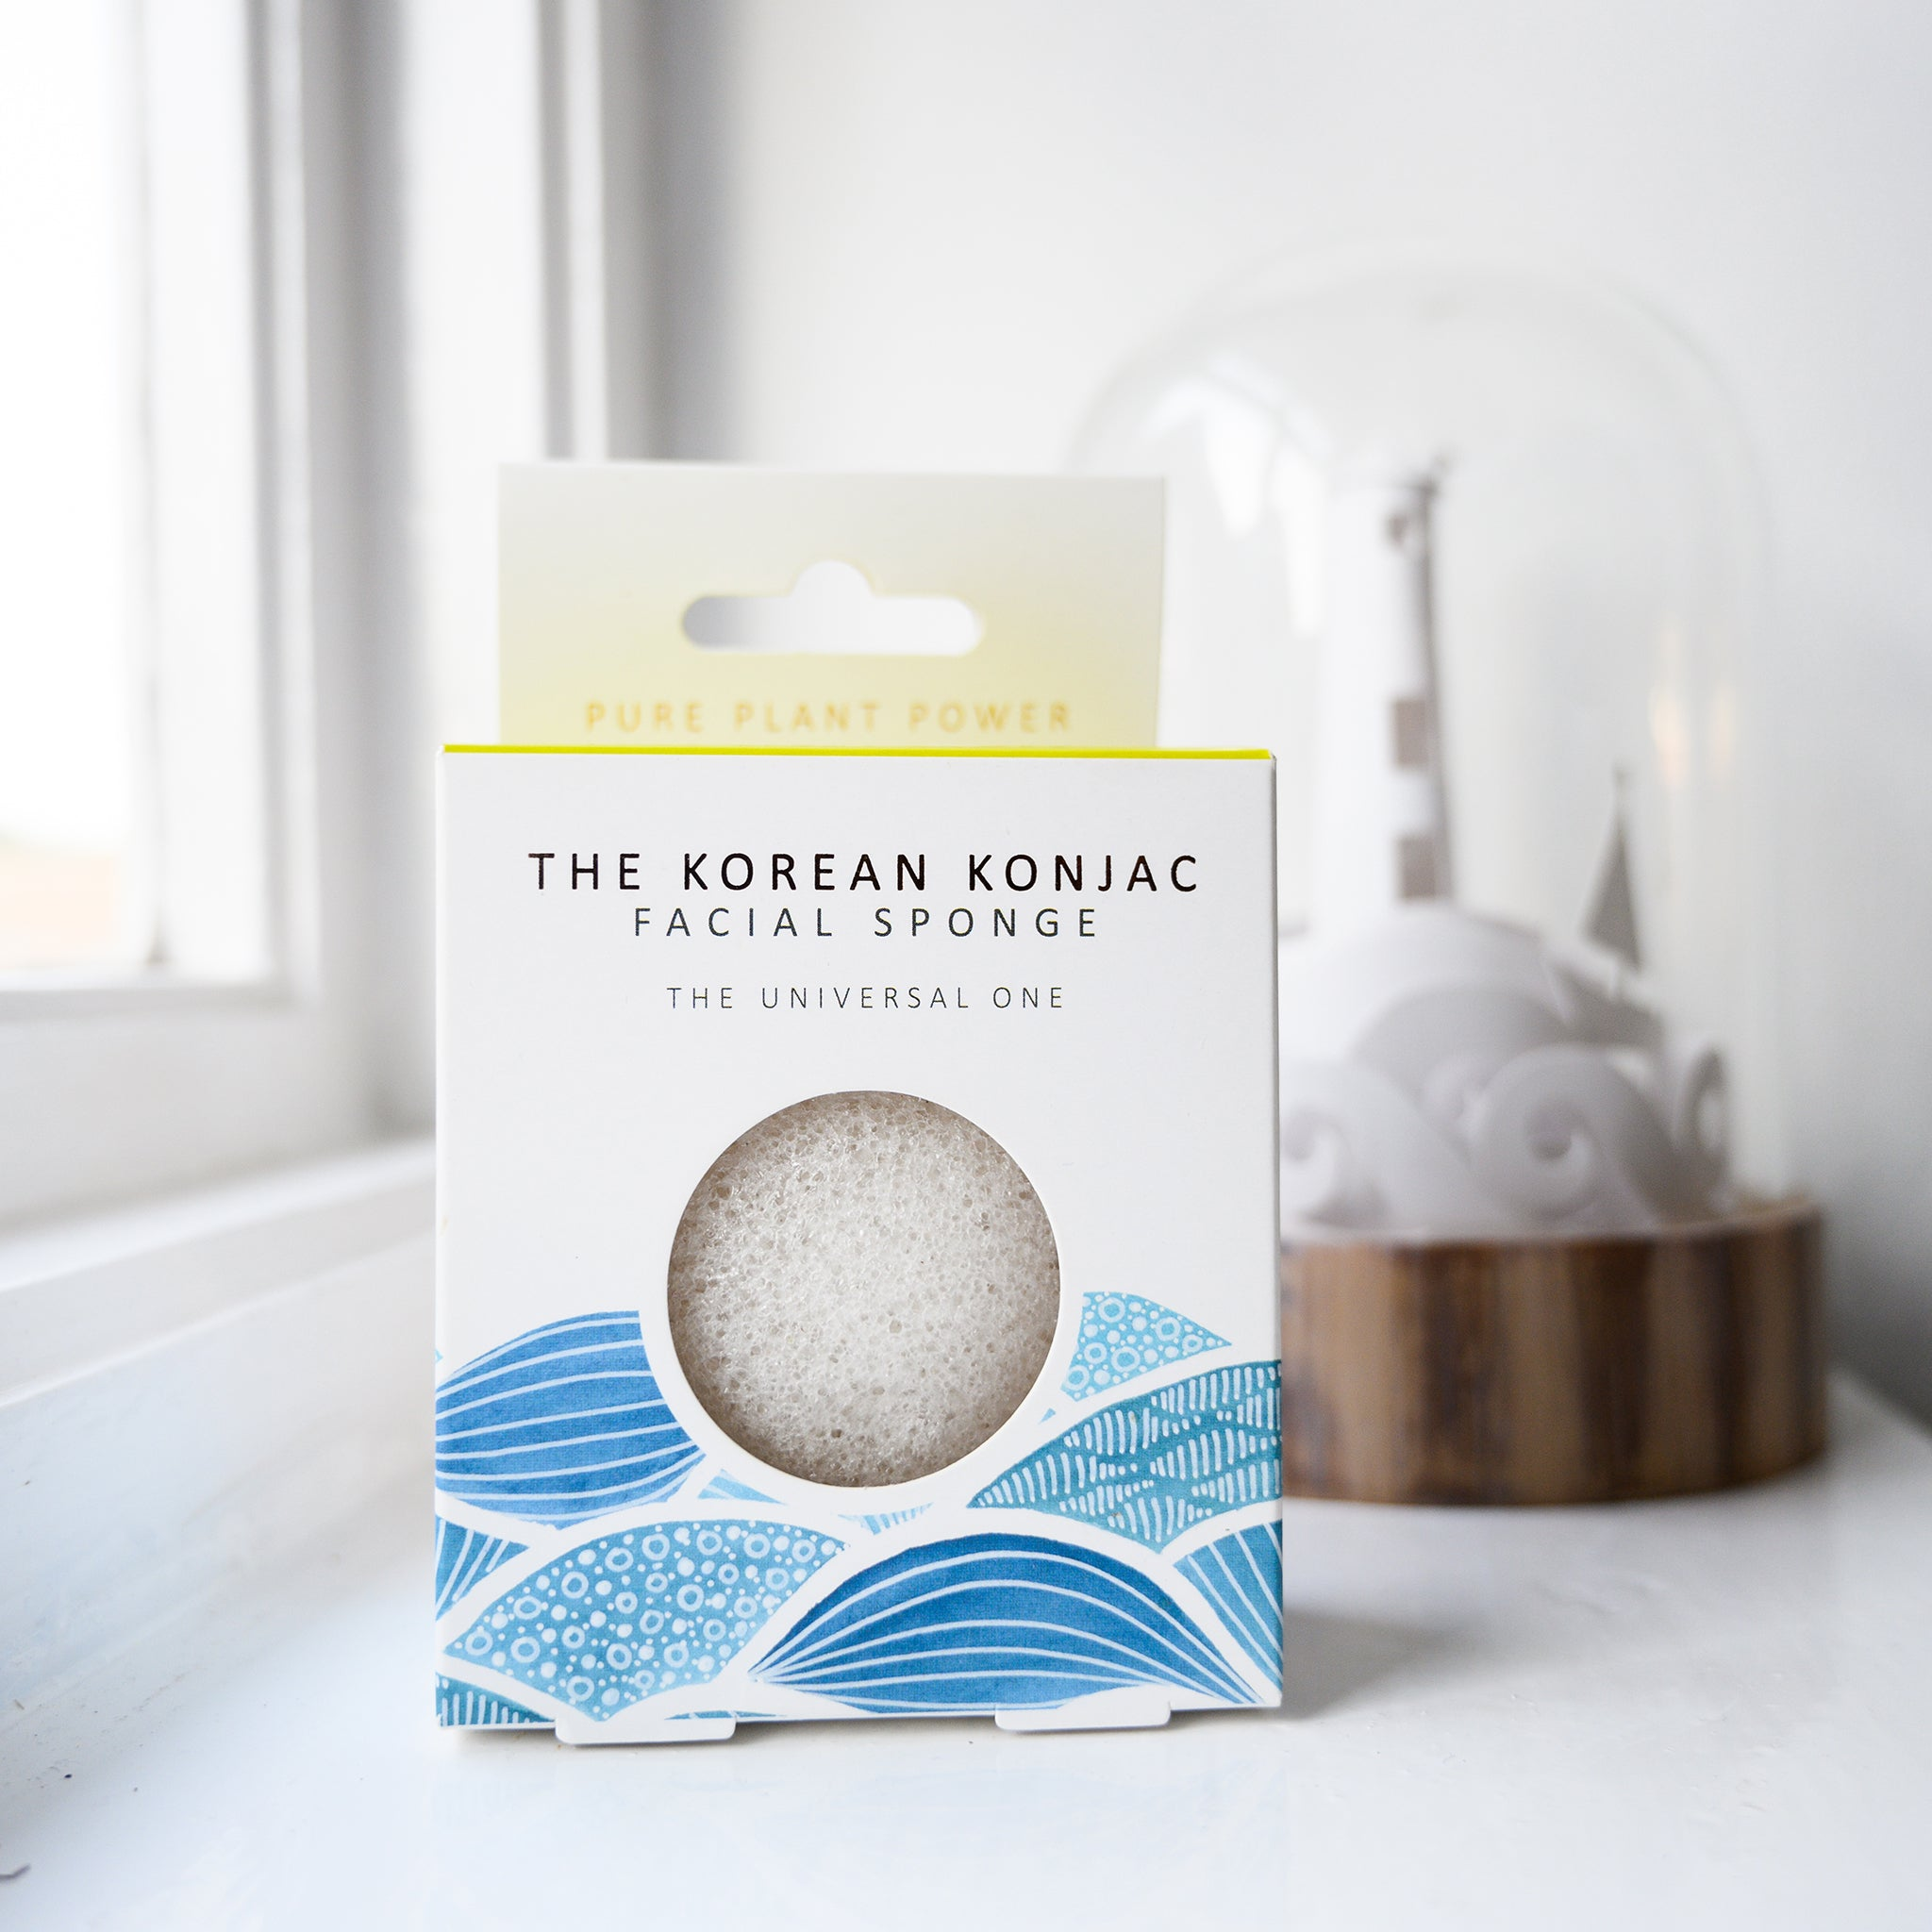 The Elements Water with 100% Pure White Konjac Facial Sponge